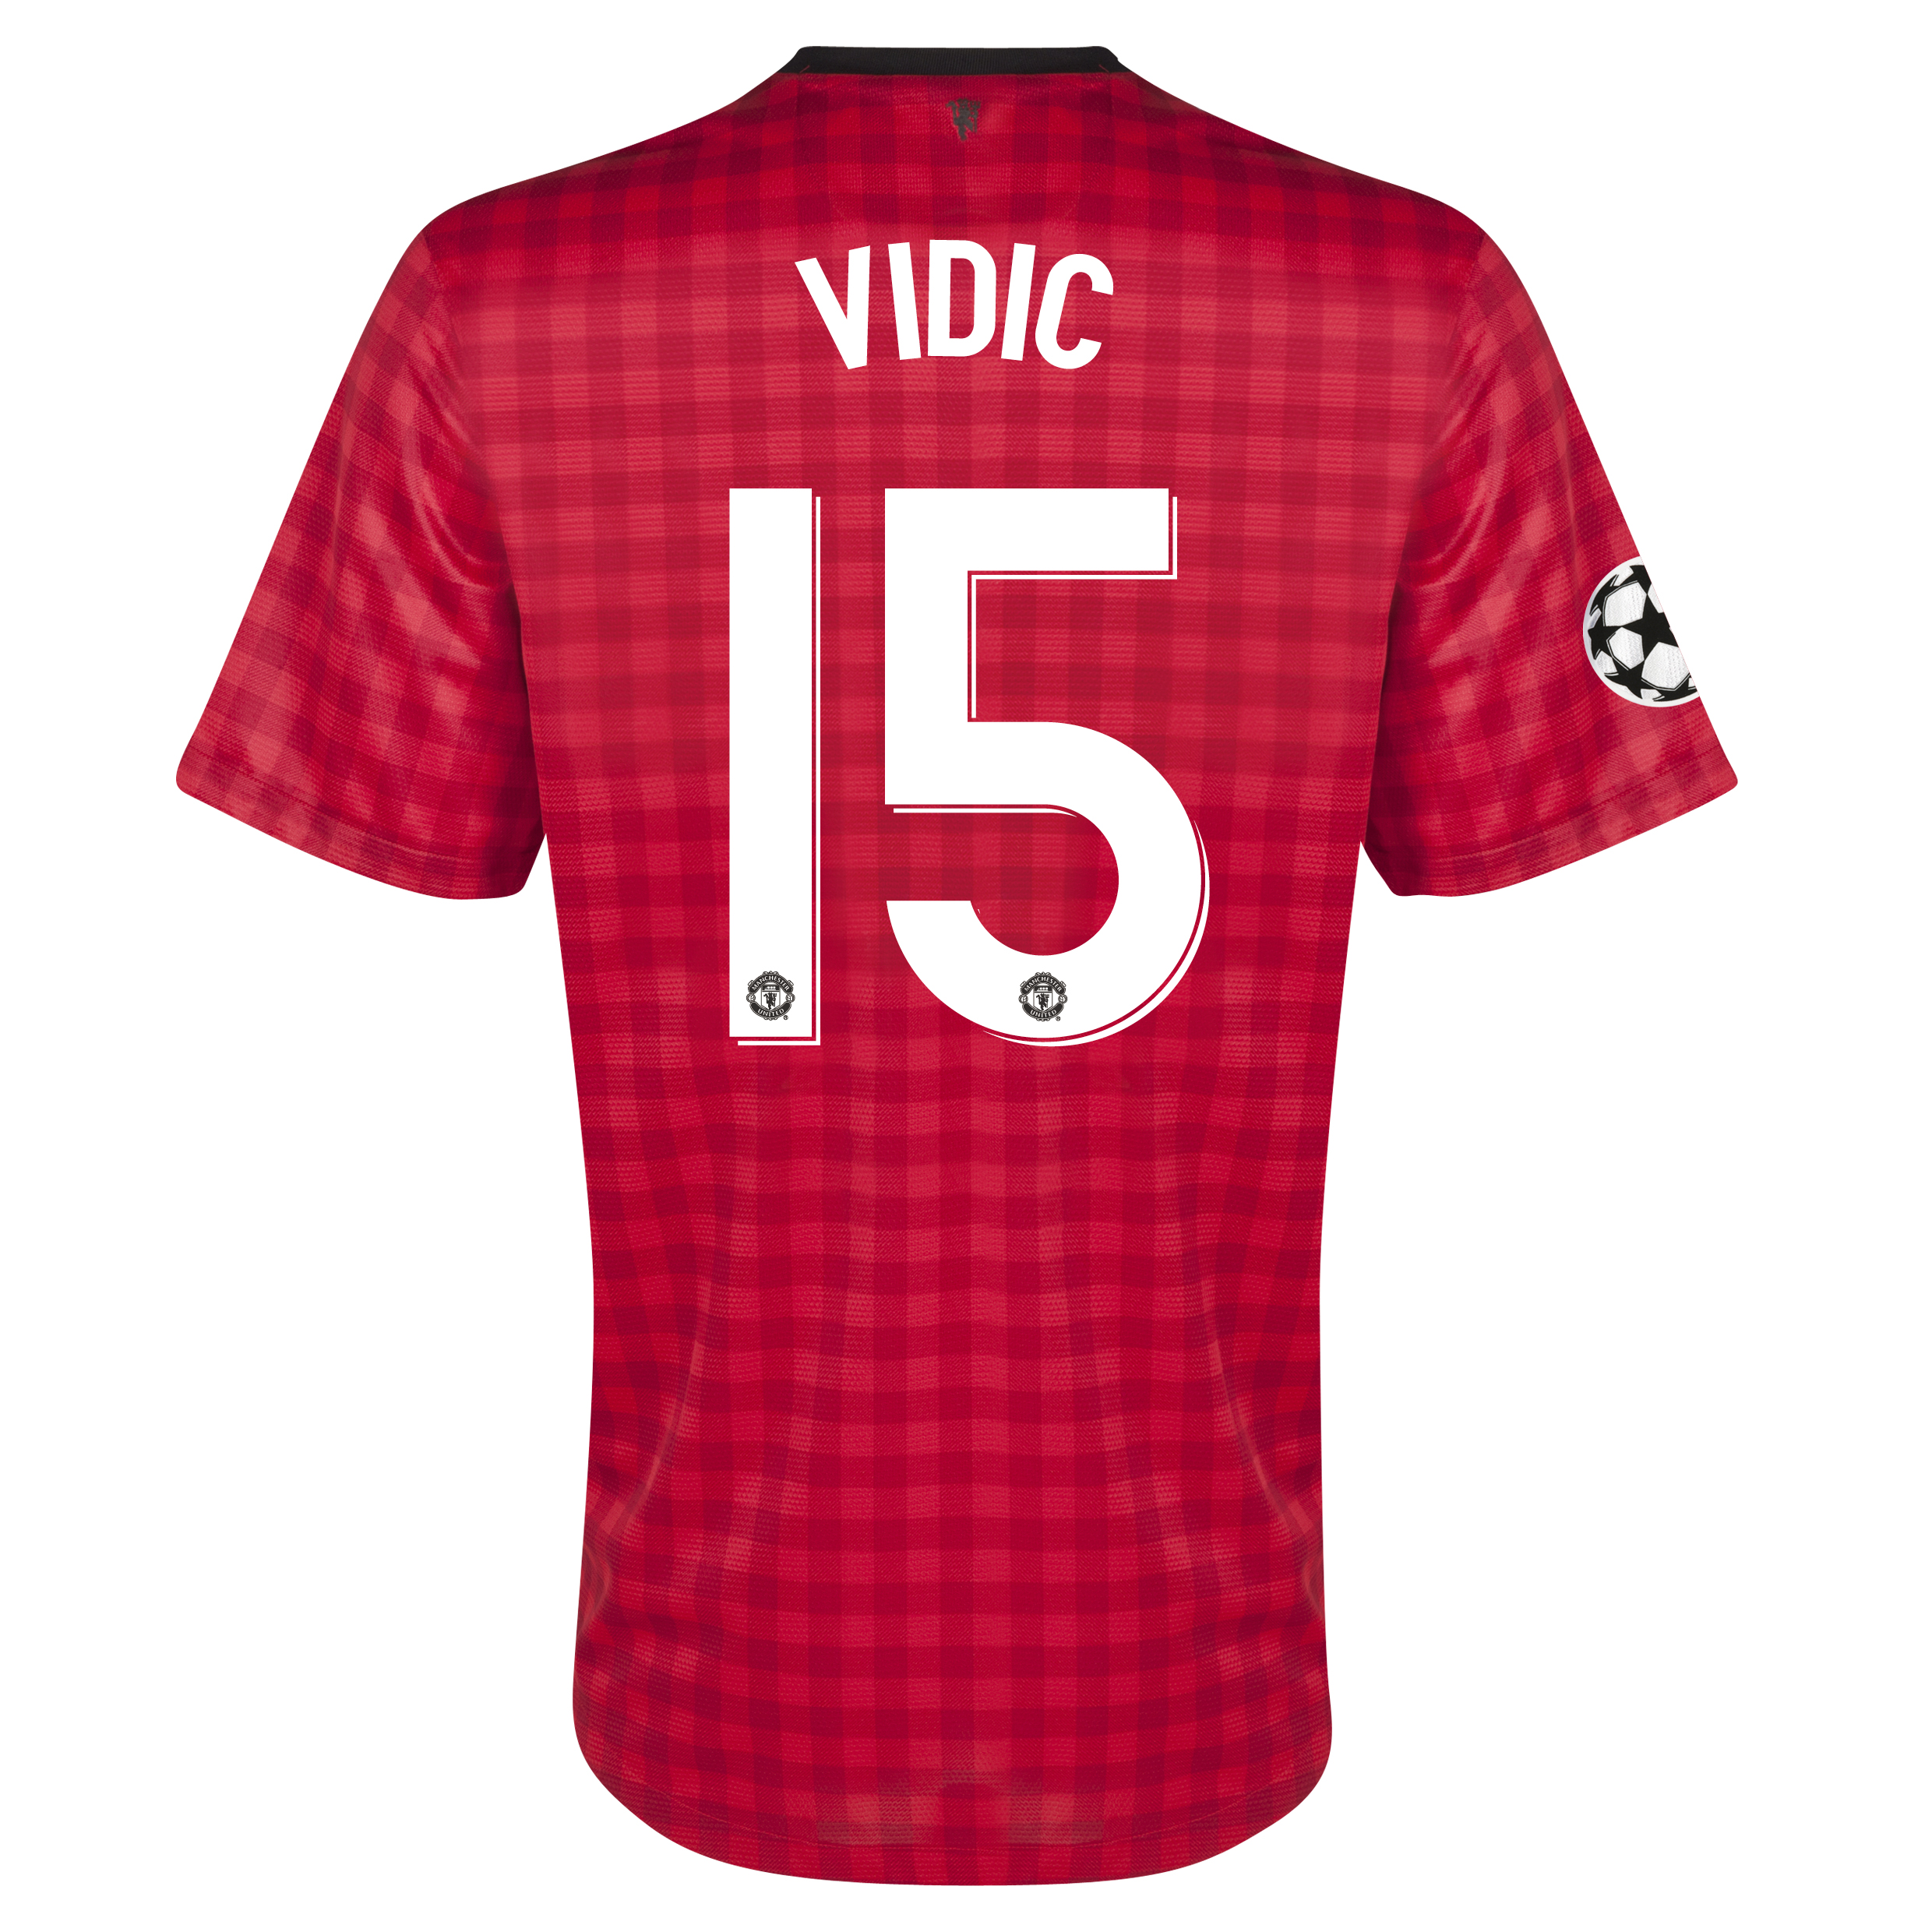 Manchester United UEFA Champions League Home Shirt 2012/13 - Kids with Vidic 15 printing